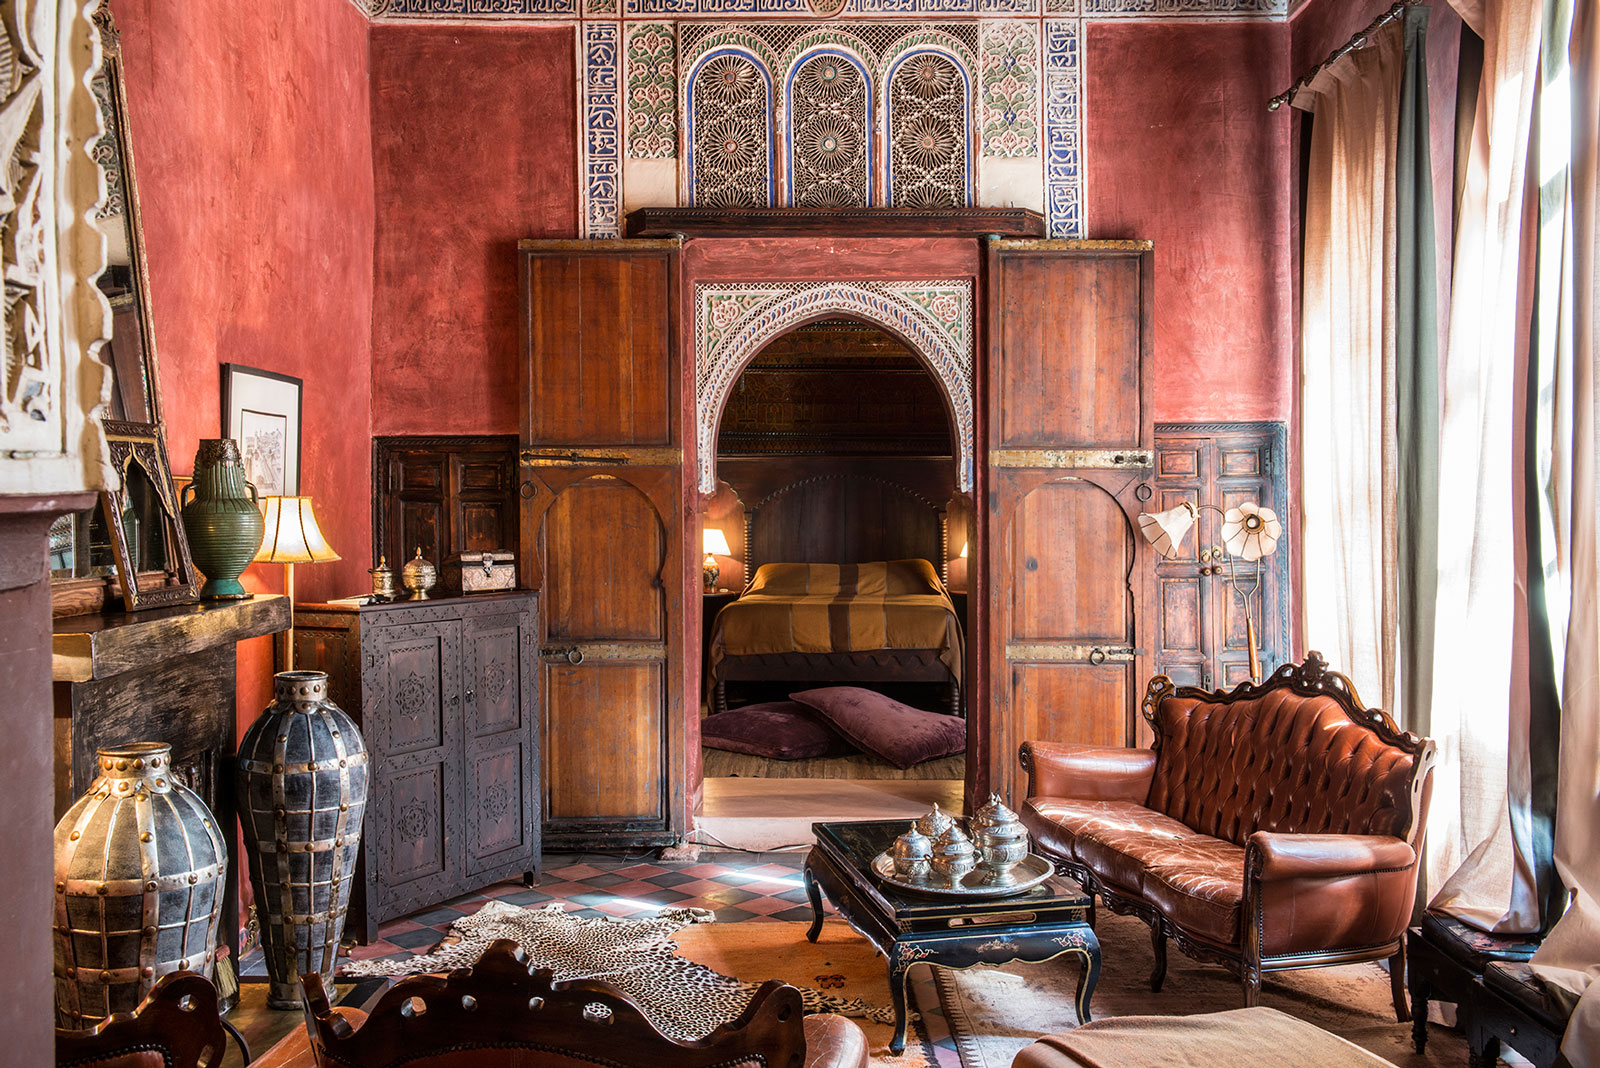 the best art hotels in marrakech wanderarti. Black Bedroom Furniture Sets. Home Design Ideas